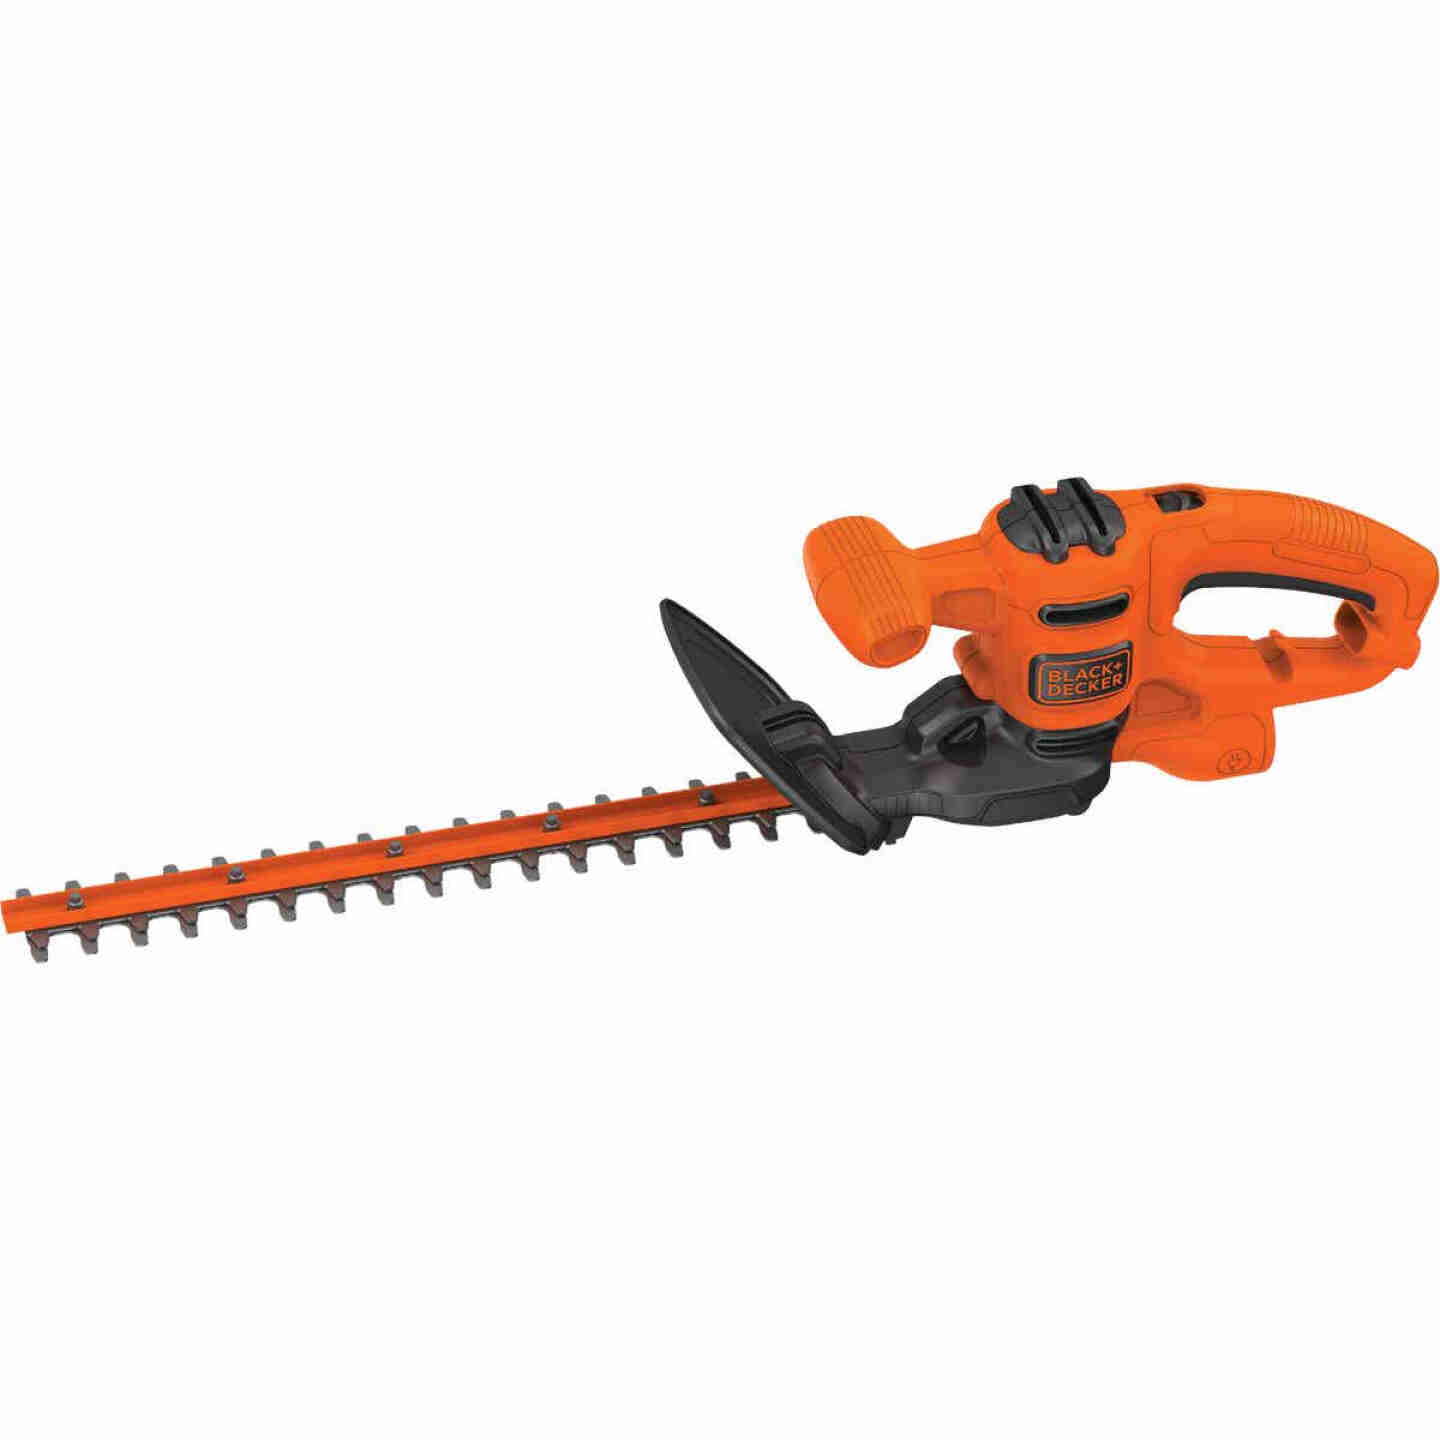 Black & Decker 16 In. 3A Corded Electric Hedge Trimmer Image 1